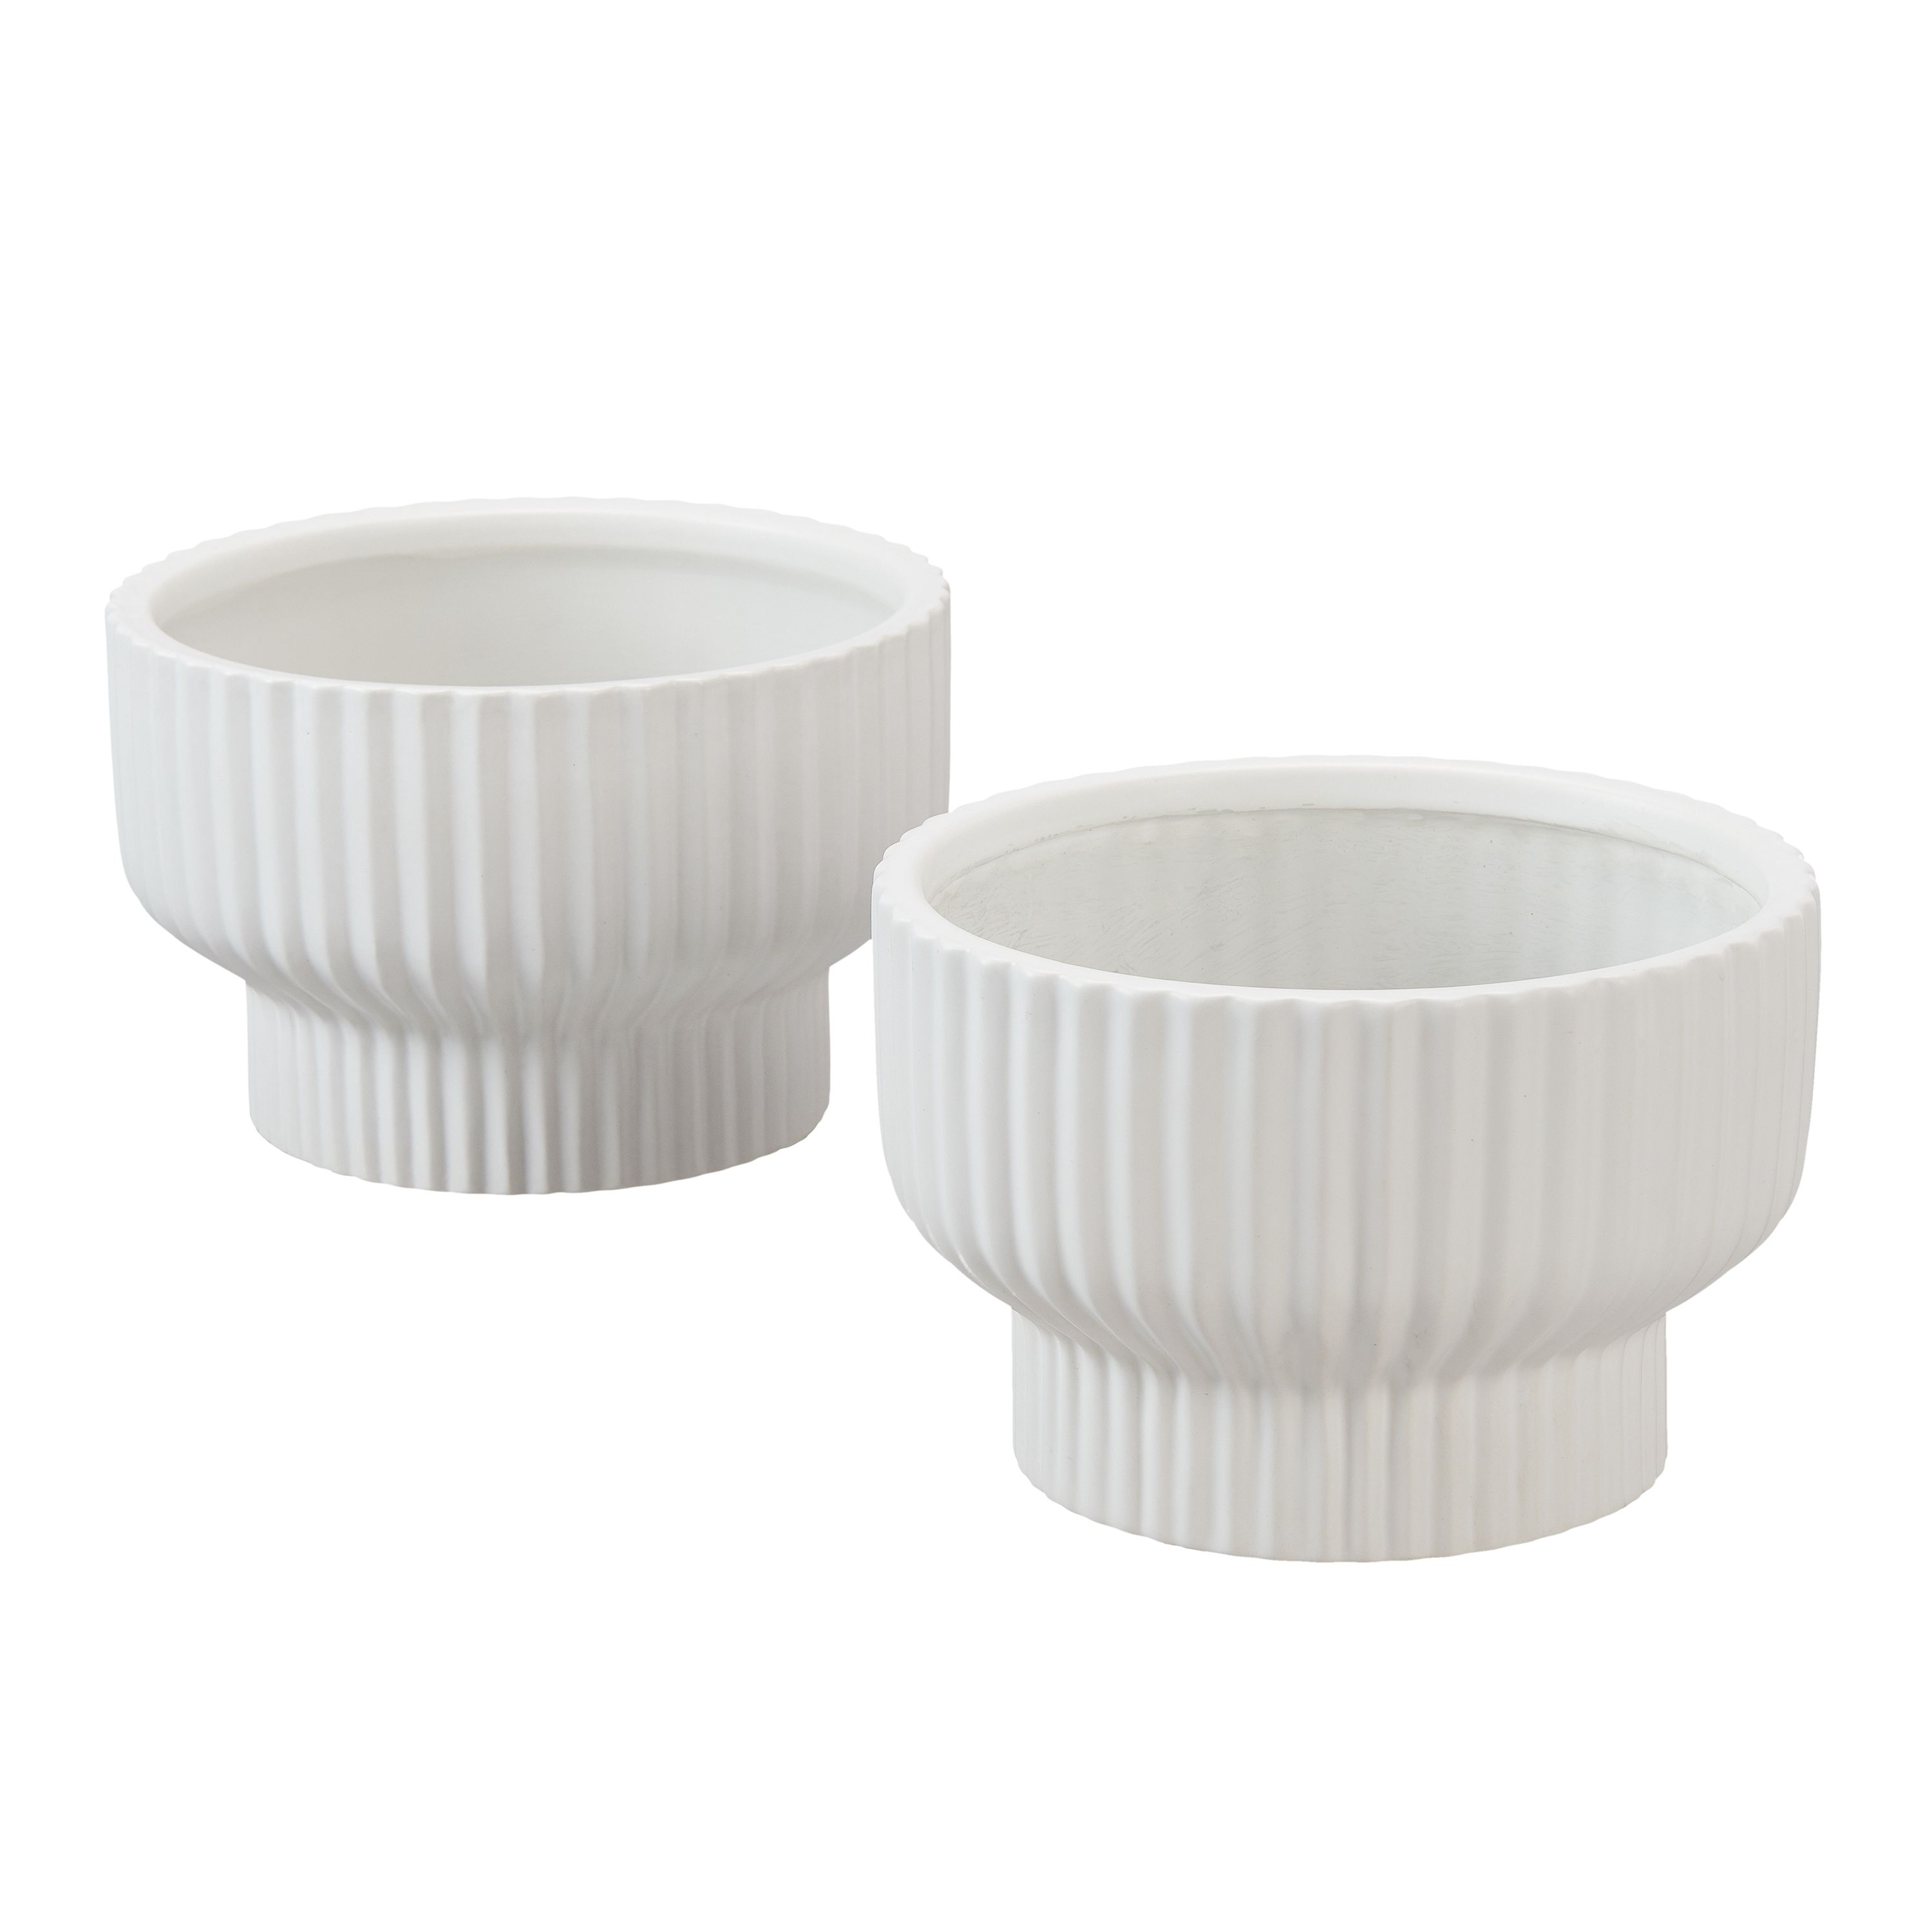 35f5d11a023ec26243f0a24b33a2e22b - Better Homes And Gardens Wavy Bowls